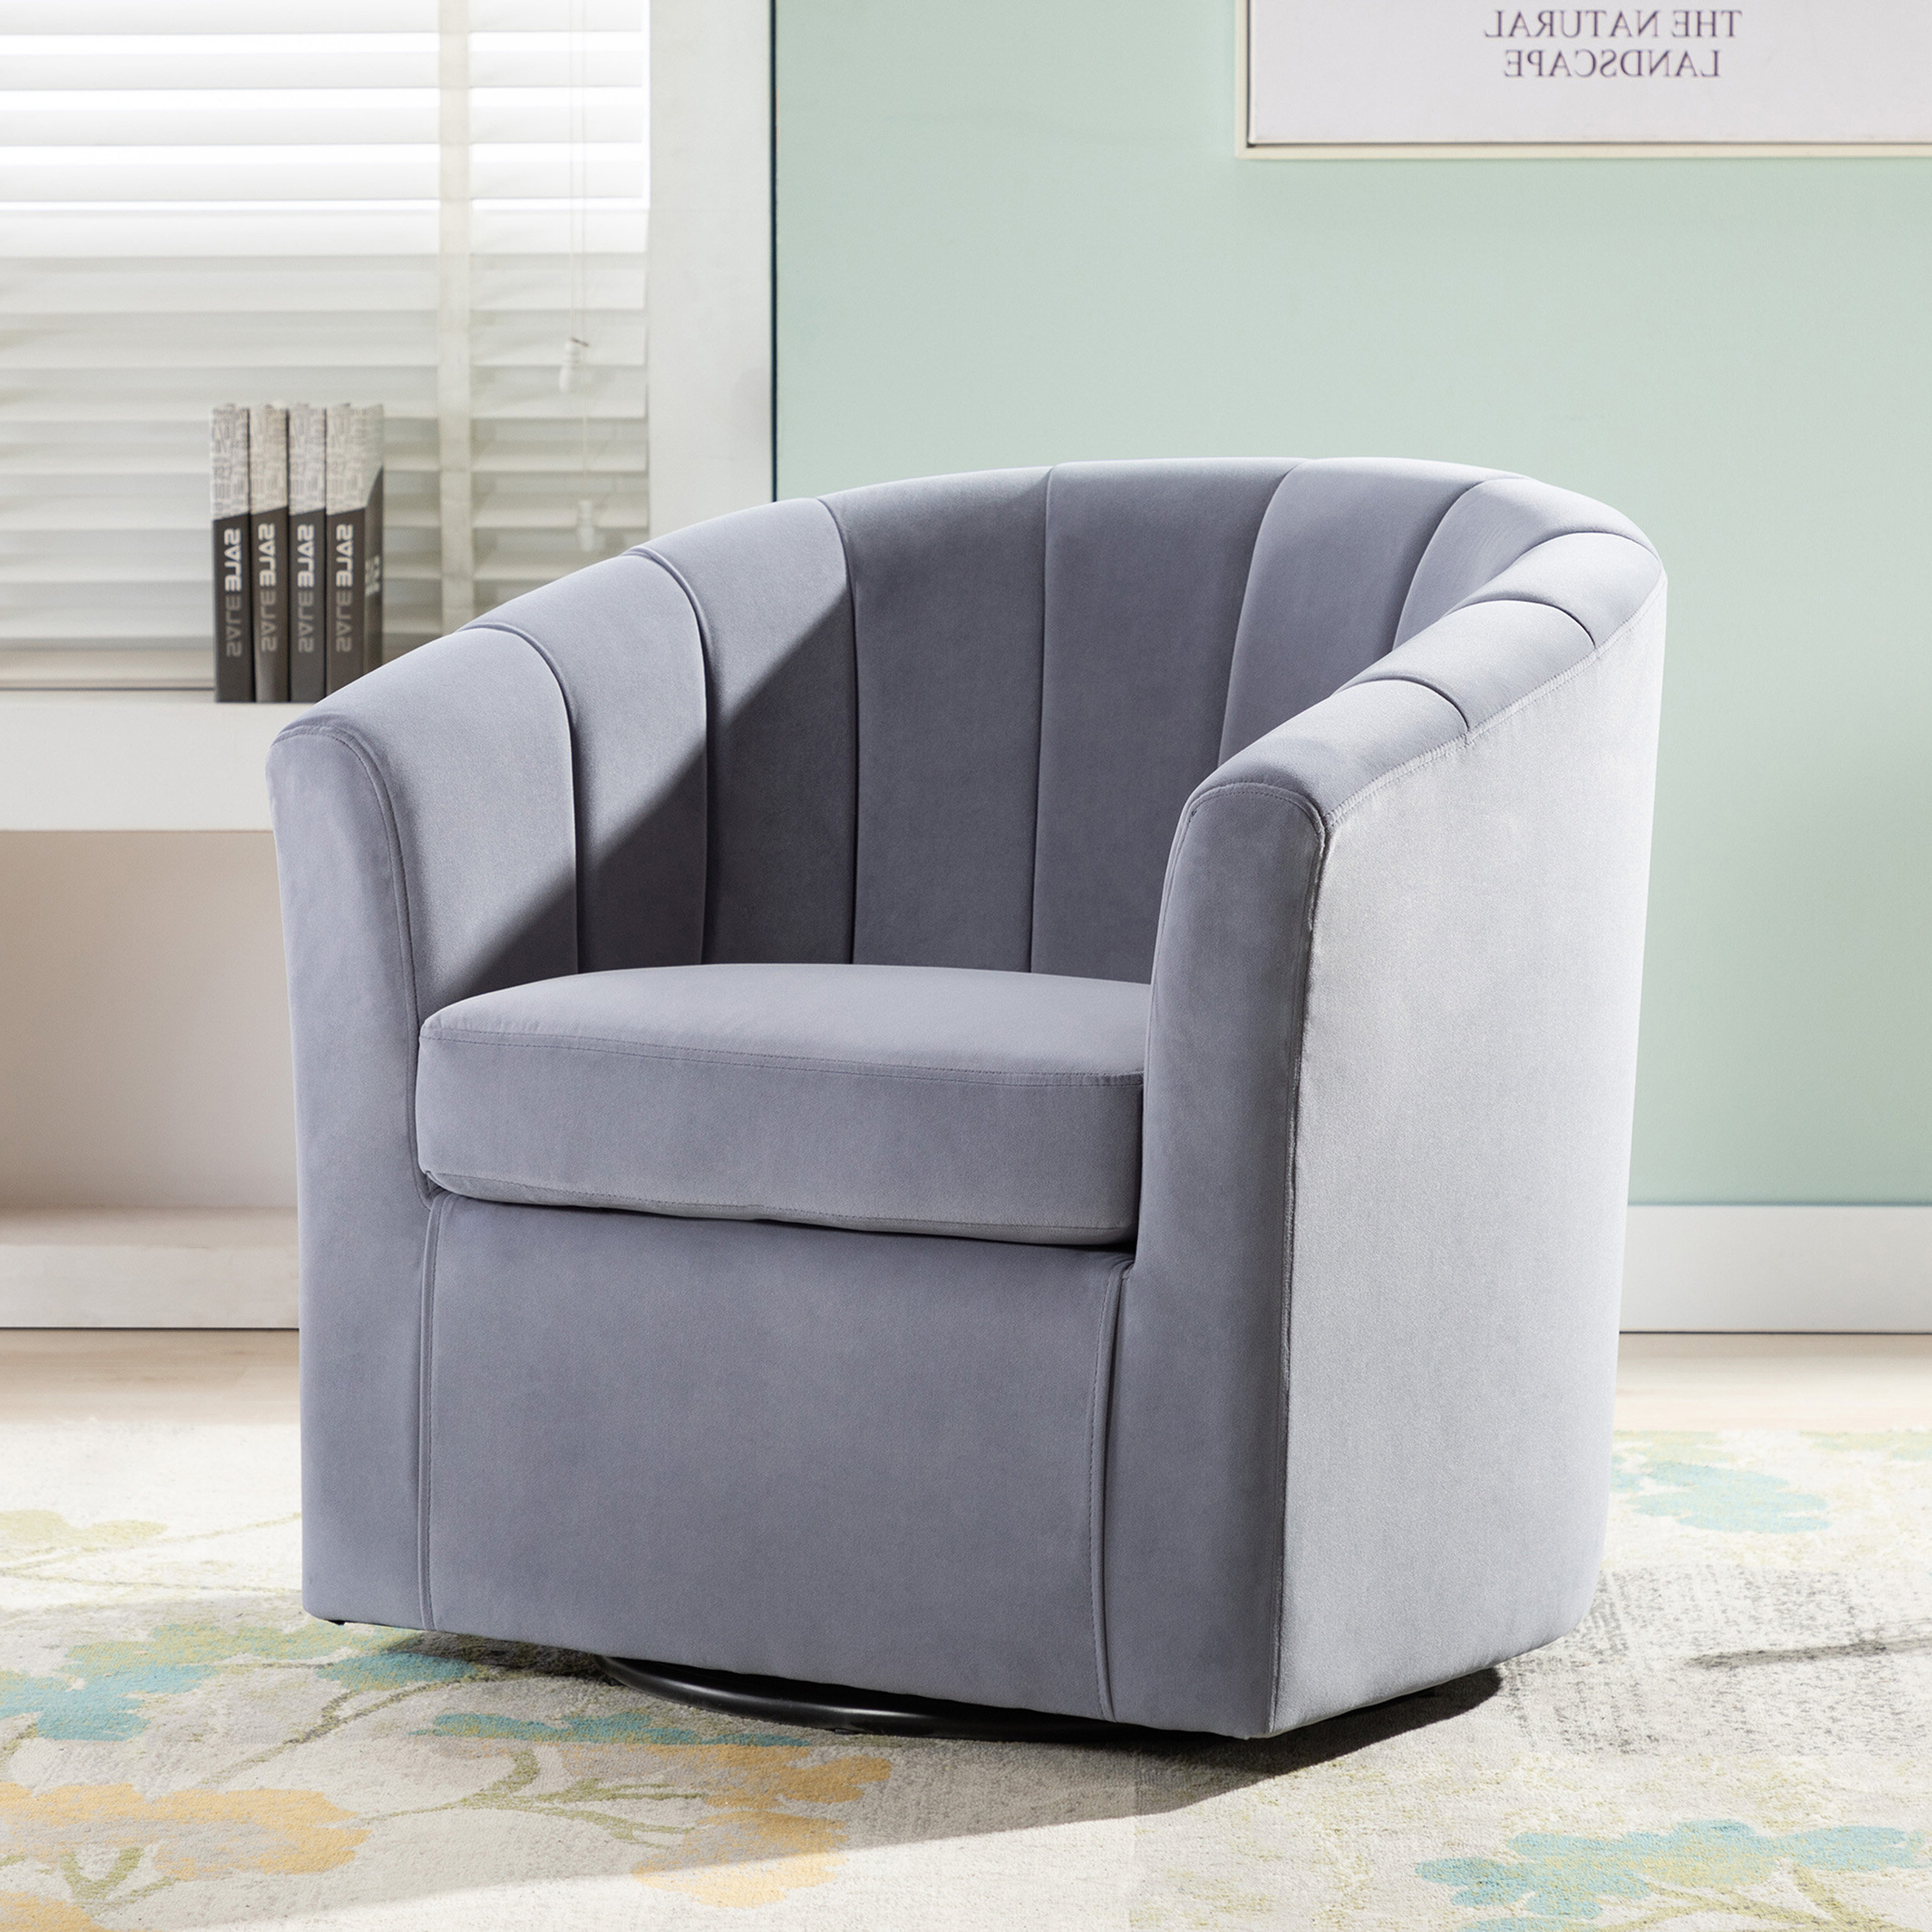 Barrentine Swivel Barrel Chair Pertaining To Most Recently Released Claudel Polyester Blend Barrel Chairs (View 2 of 20)